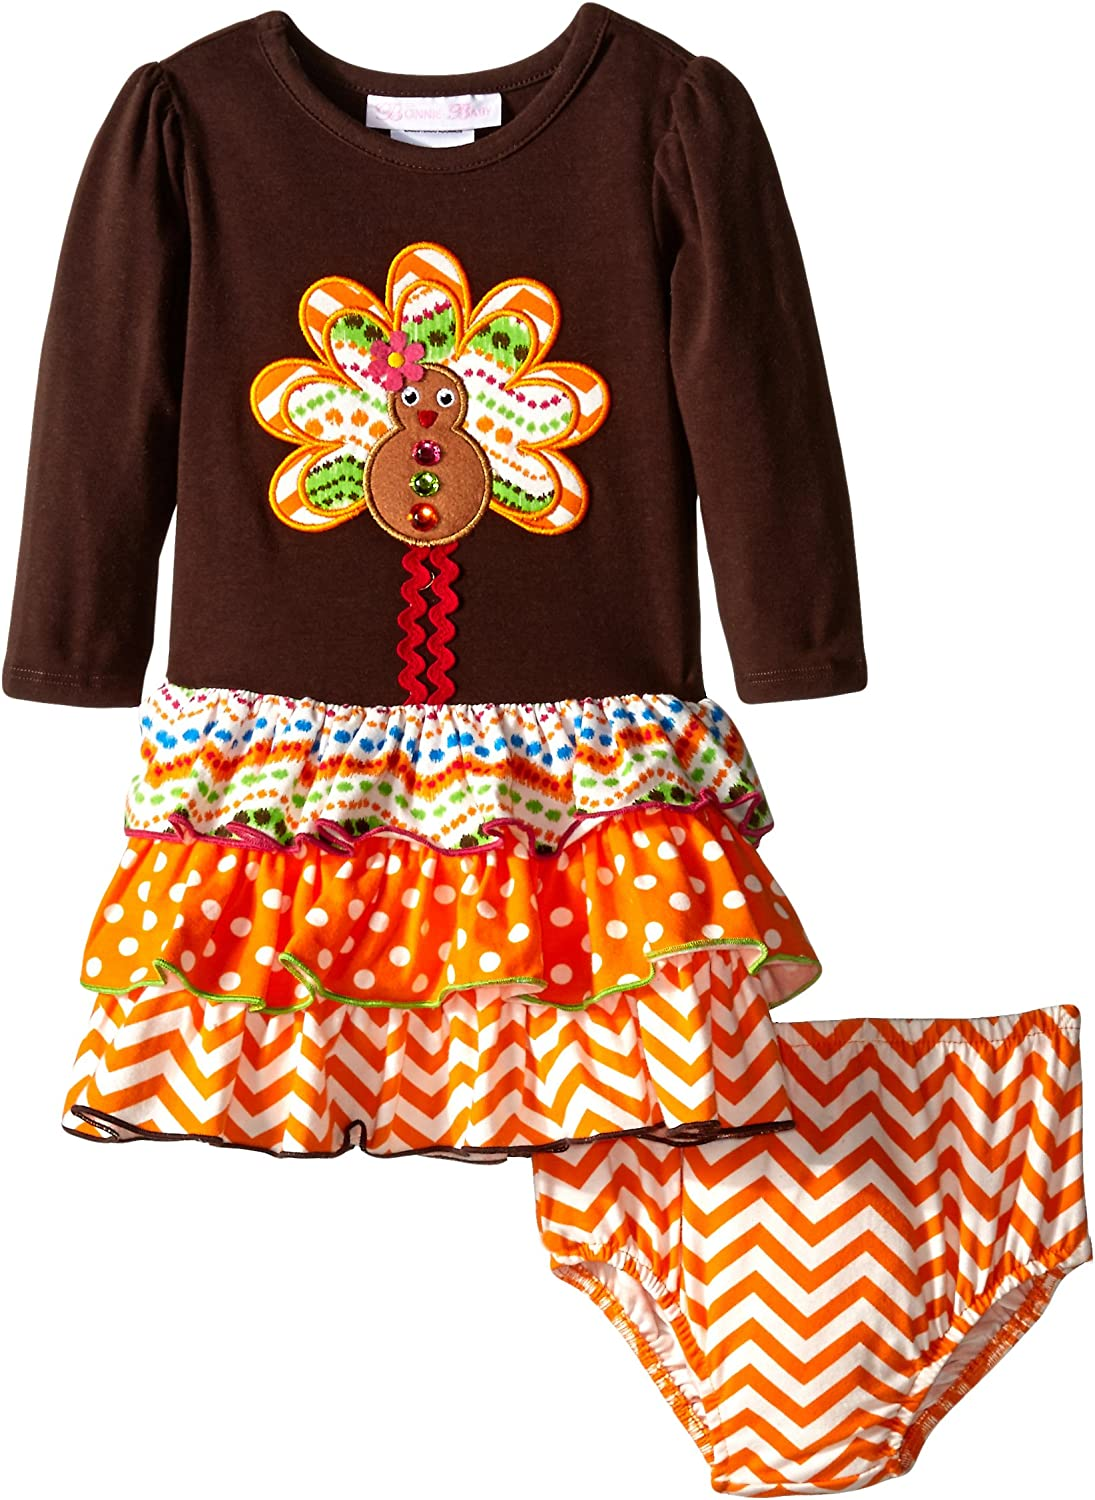 Bonnie Baby Girls Gingerbread Turkey Applique Dress with Multi Tiered Skirt